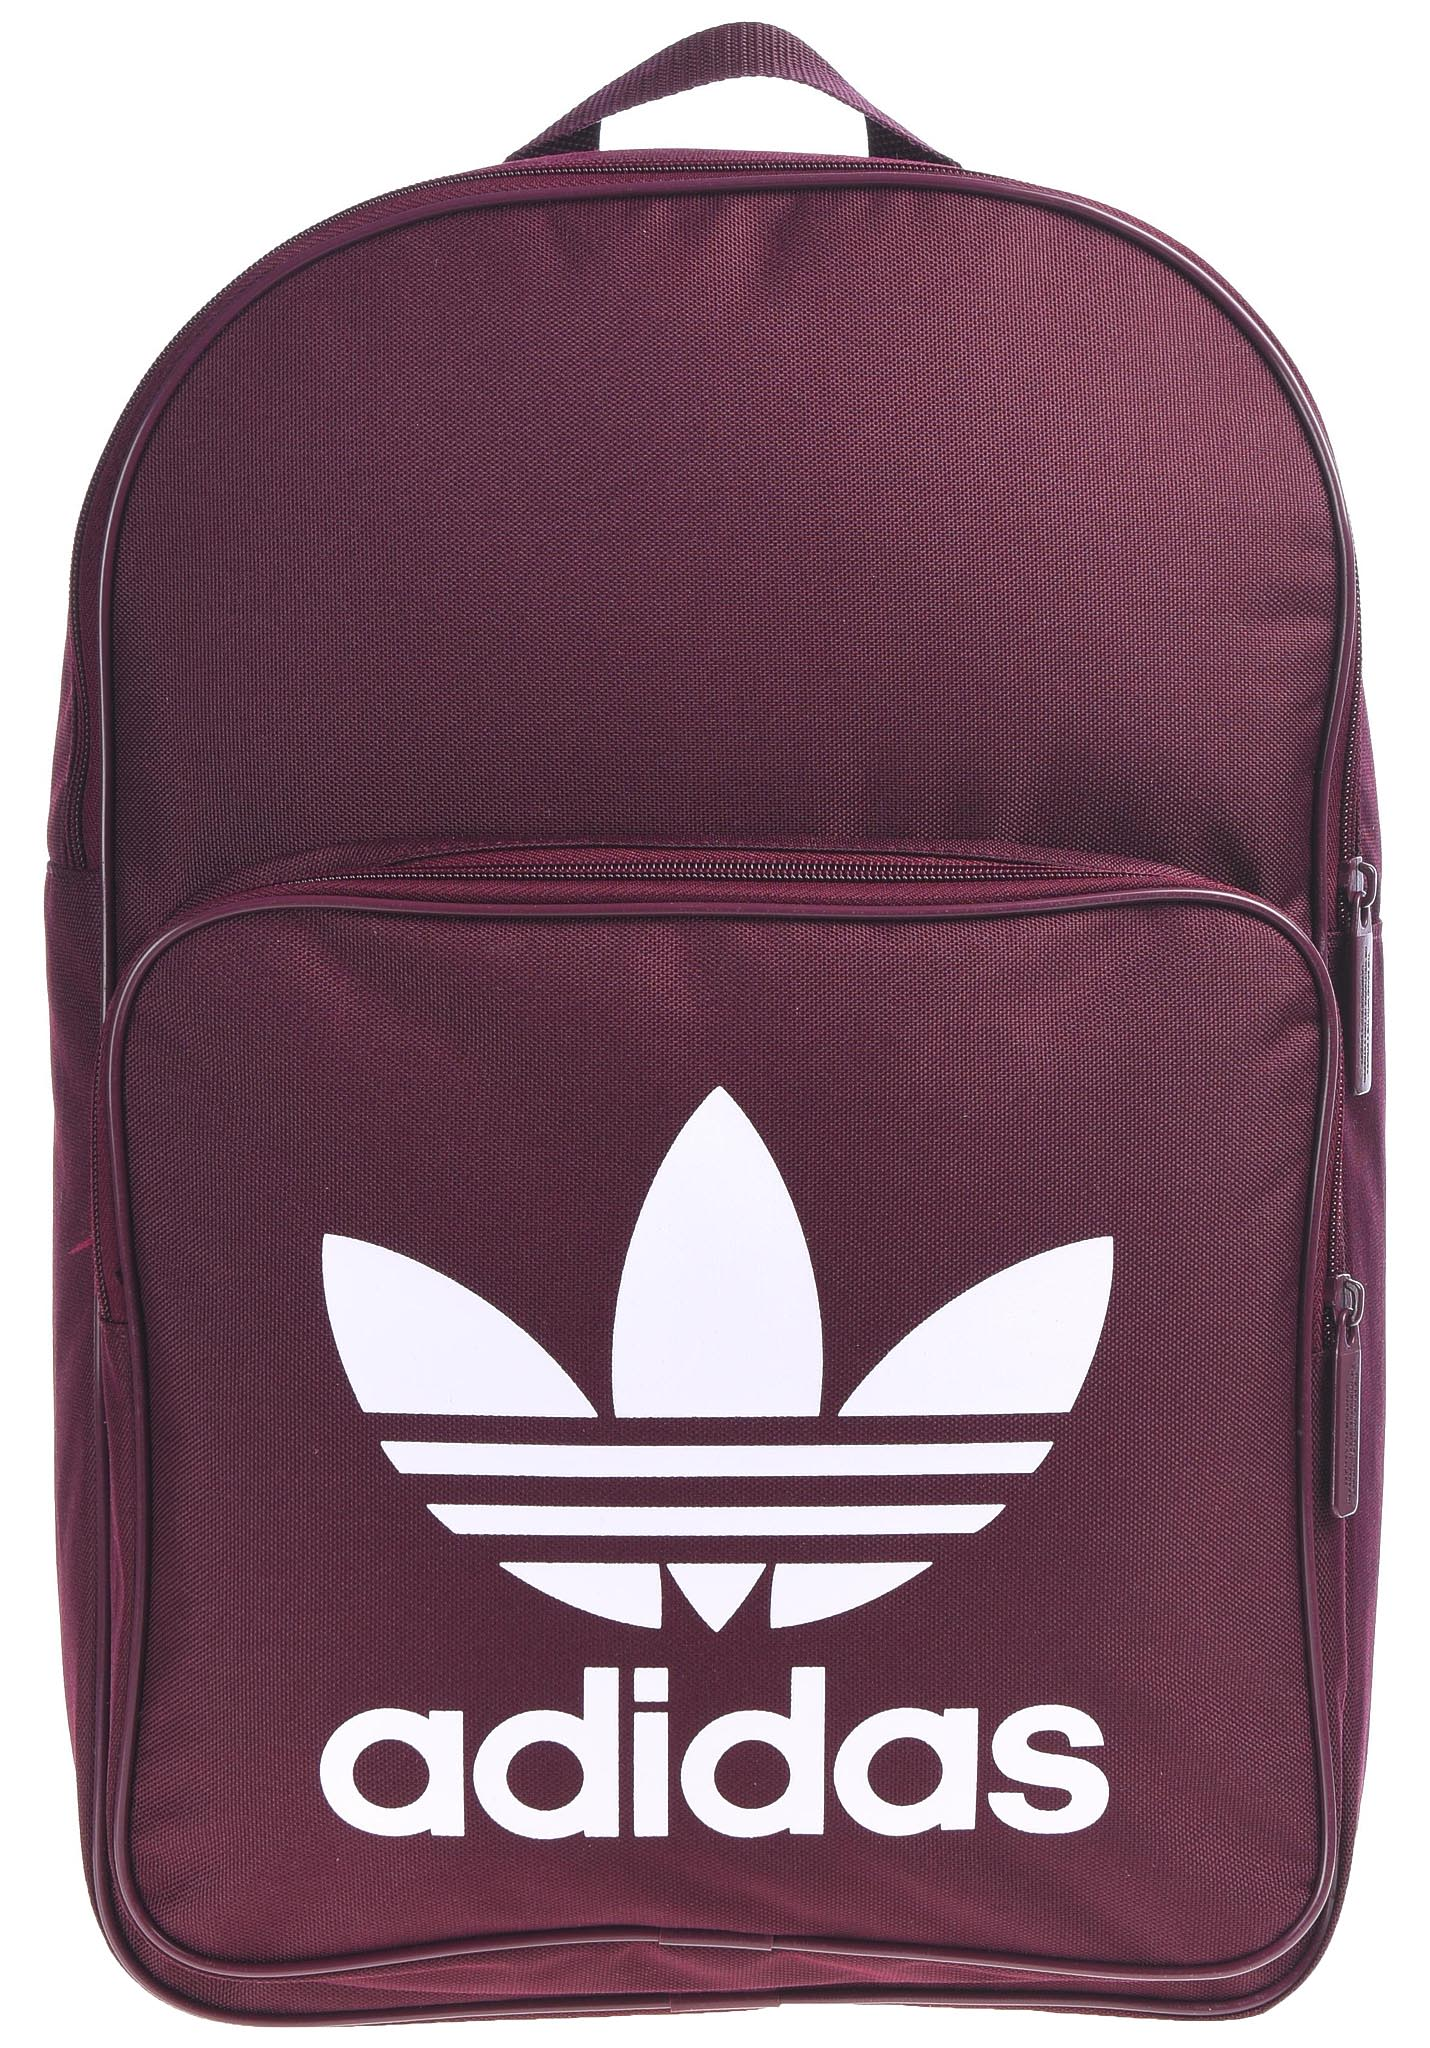 5a937e70be9 ADIDAS ORIGINALS Classic Trefoil - Backpack - Red - Planet Sports